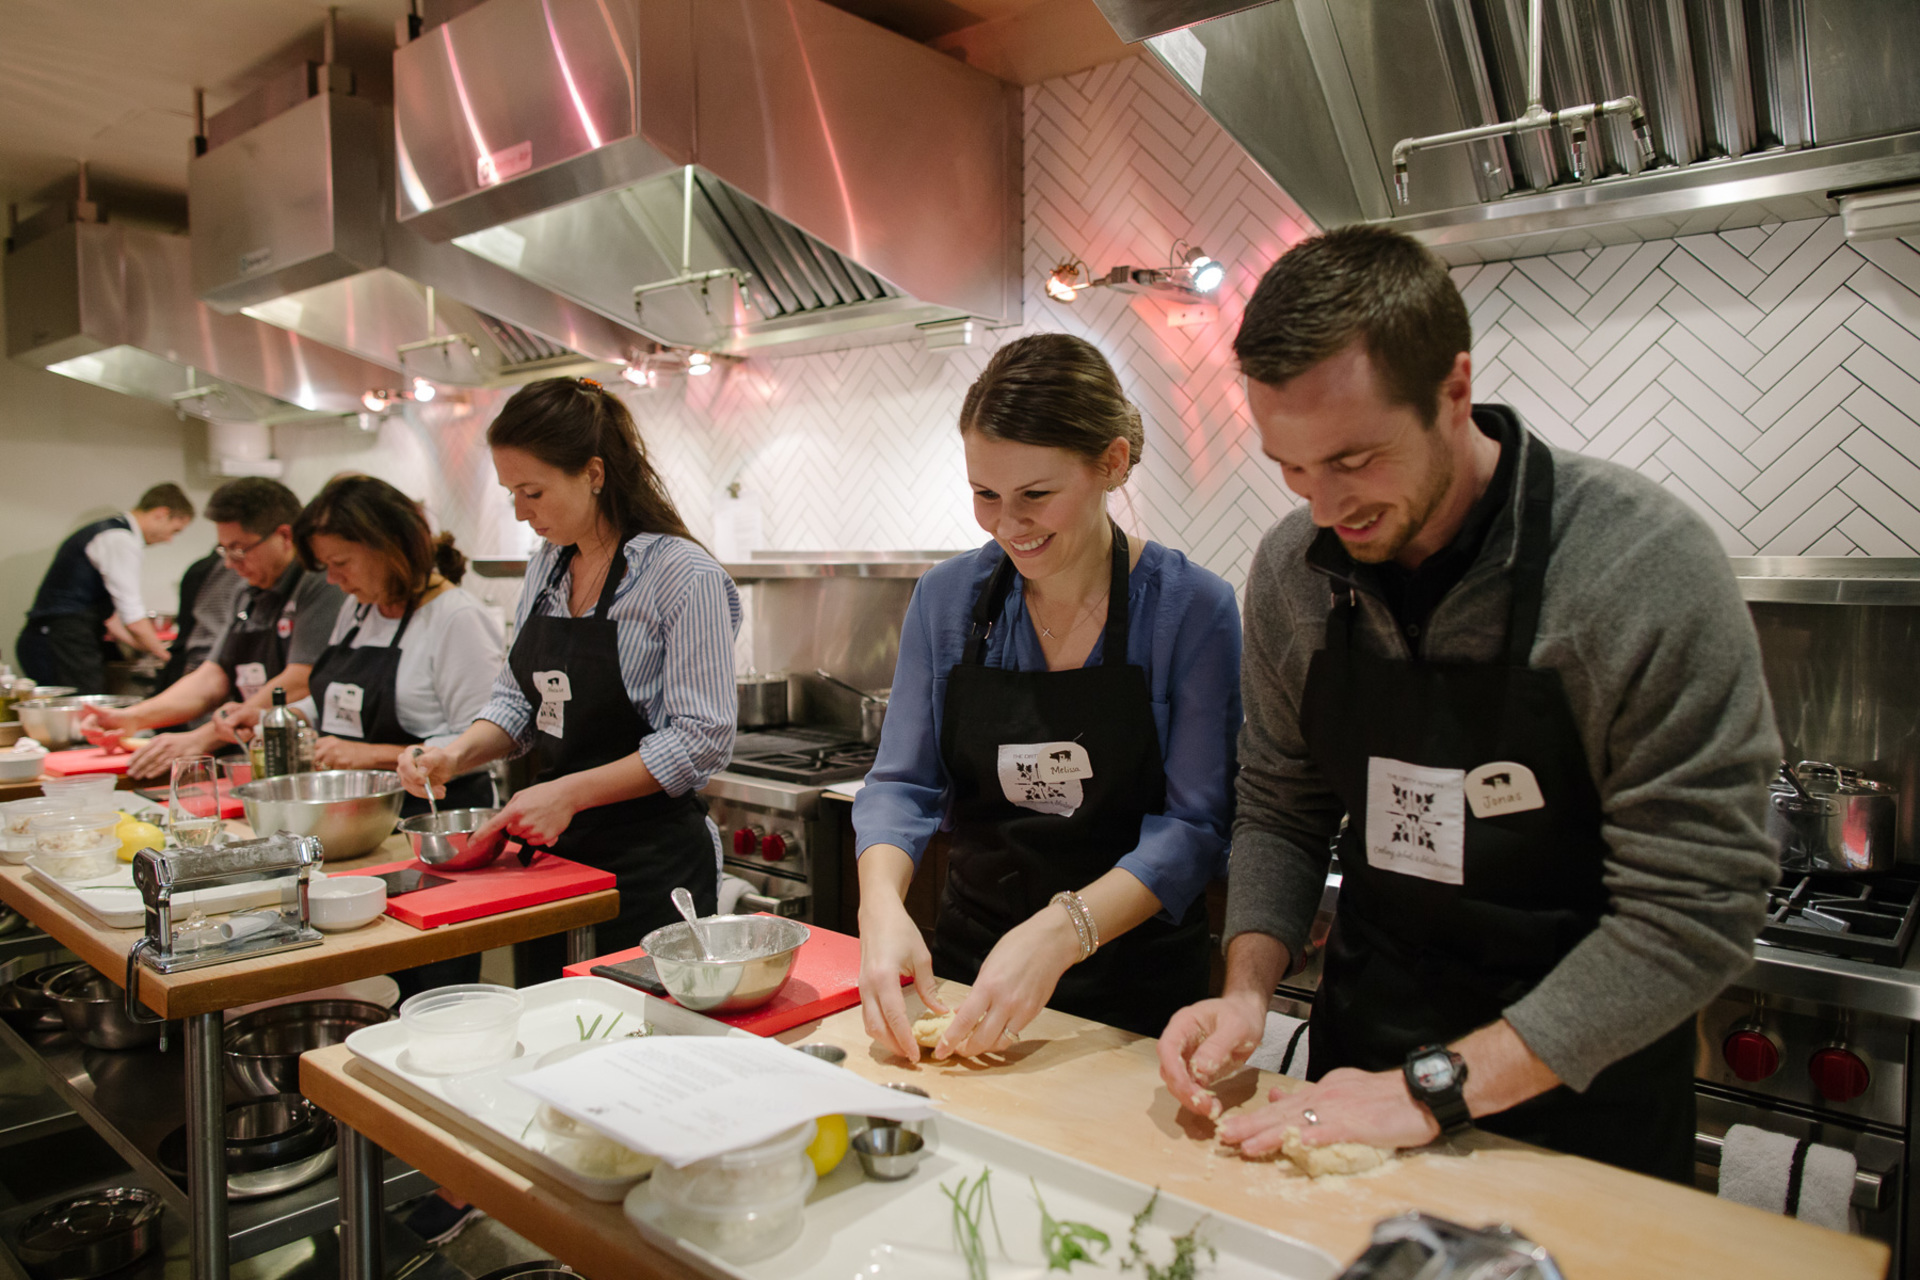 WIN COOKING CLASSES + FIND OUT MY EASY, COOKING TIPS TO GET READY FOR THE HOLIDAYS